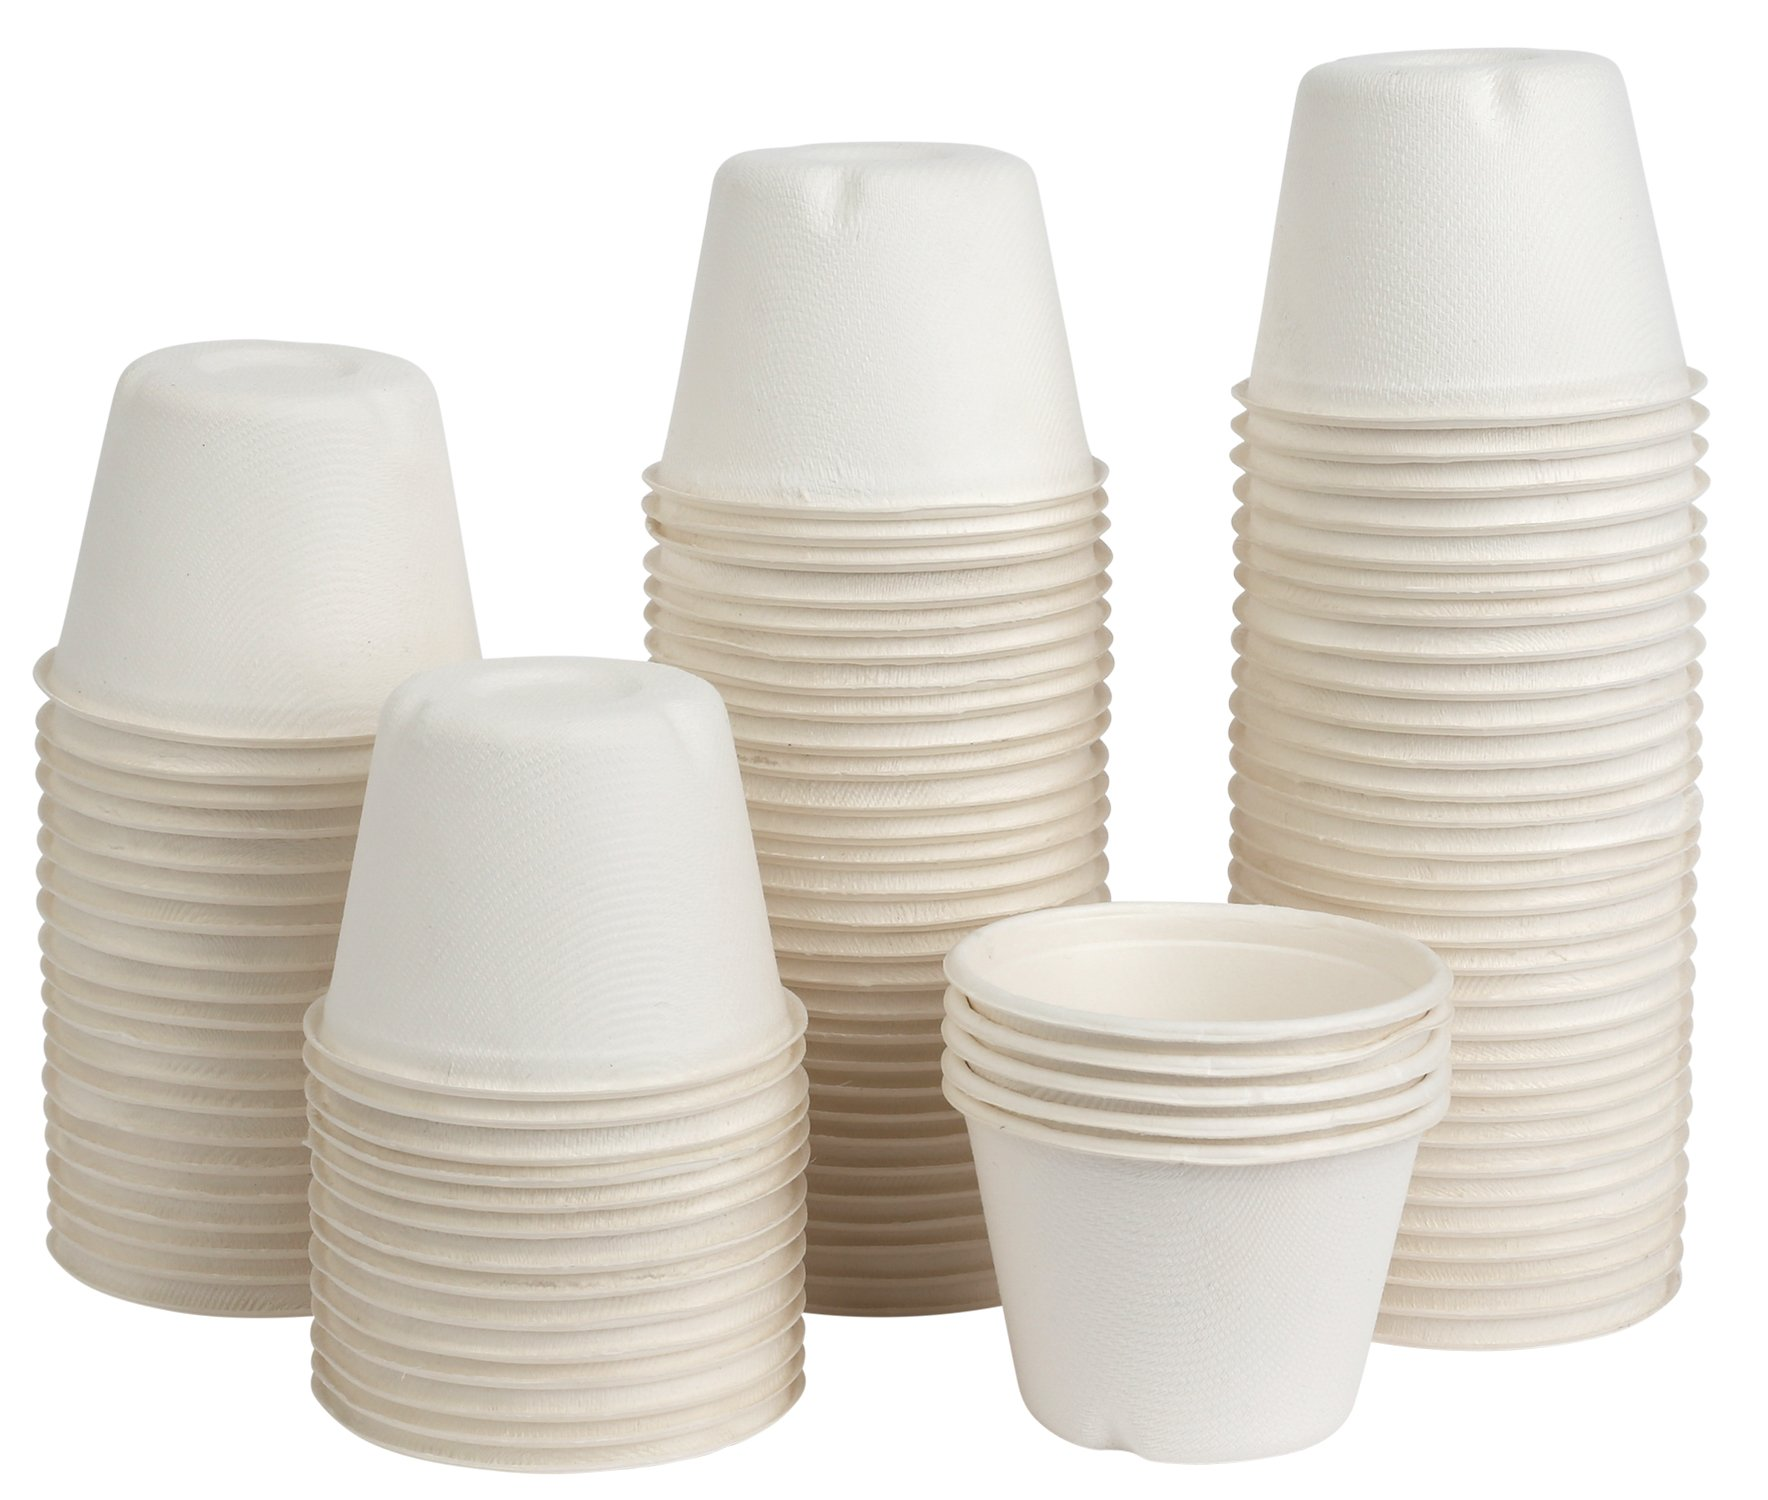 Brheez Portion Souffle Bagasse Cups - Perfect for Condiments and Samples, Compostable, Biodegradable and Recyclable, Eco Friendly Alternative to Paper and Plastic (4 oz Cups, 200)